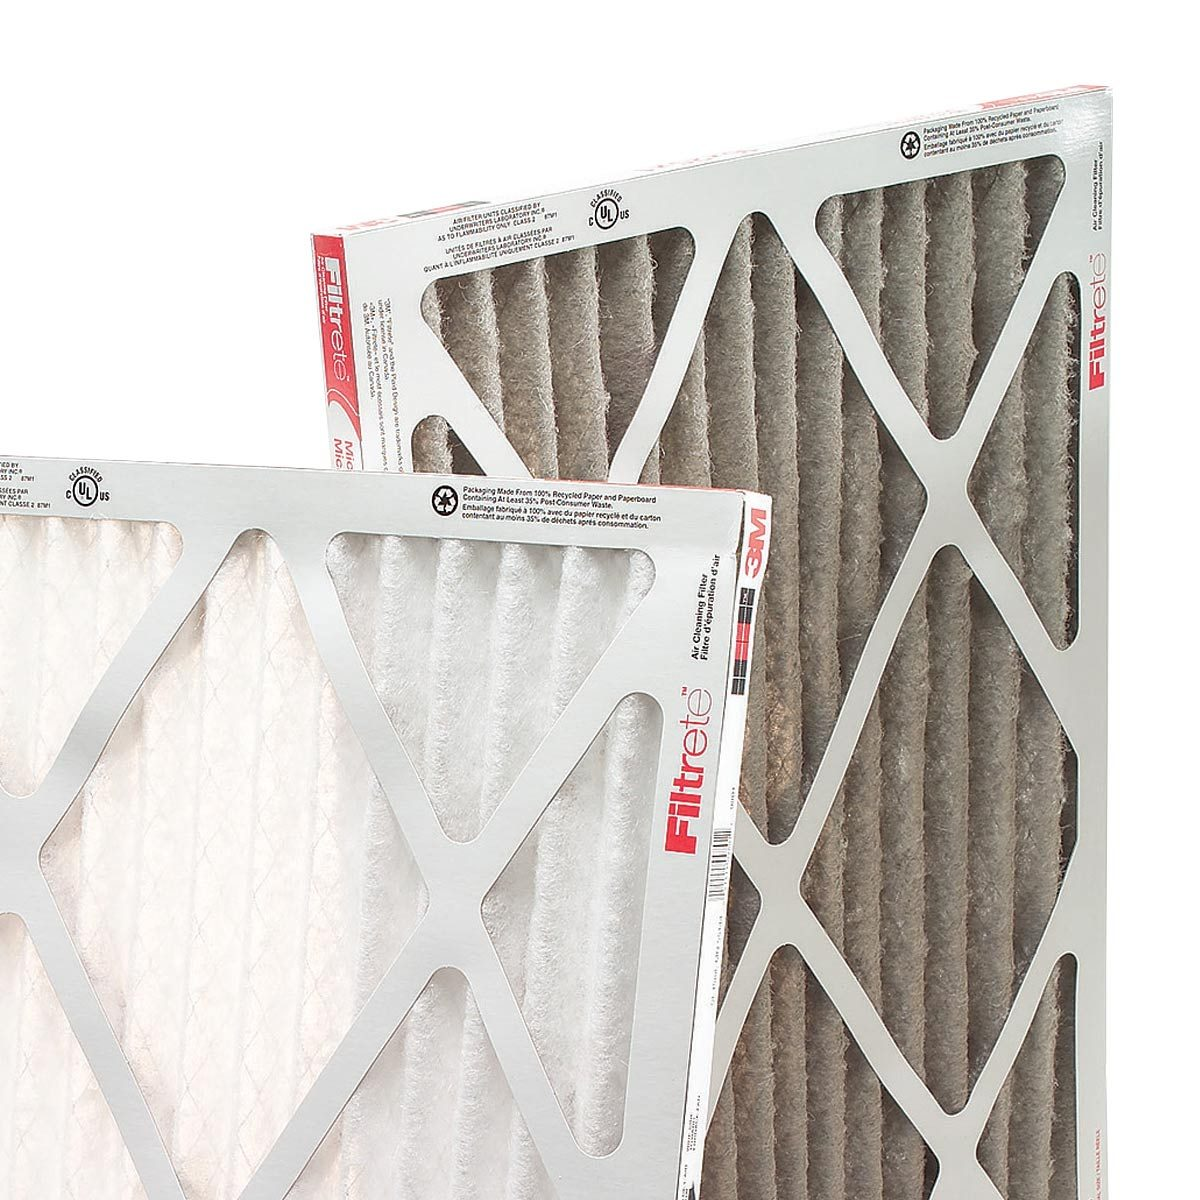 Costco Furnace Filters Allergies Filtering Out Pollen With Furnace Filters The Family